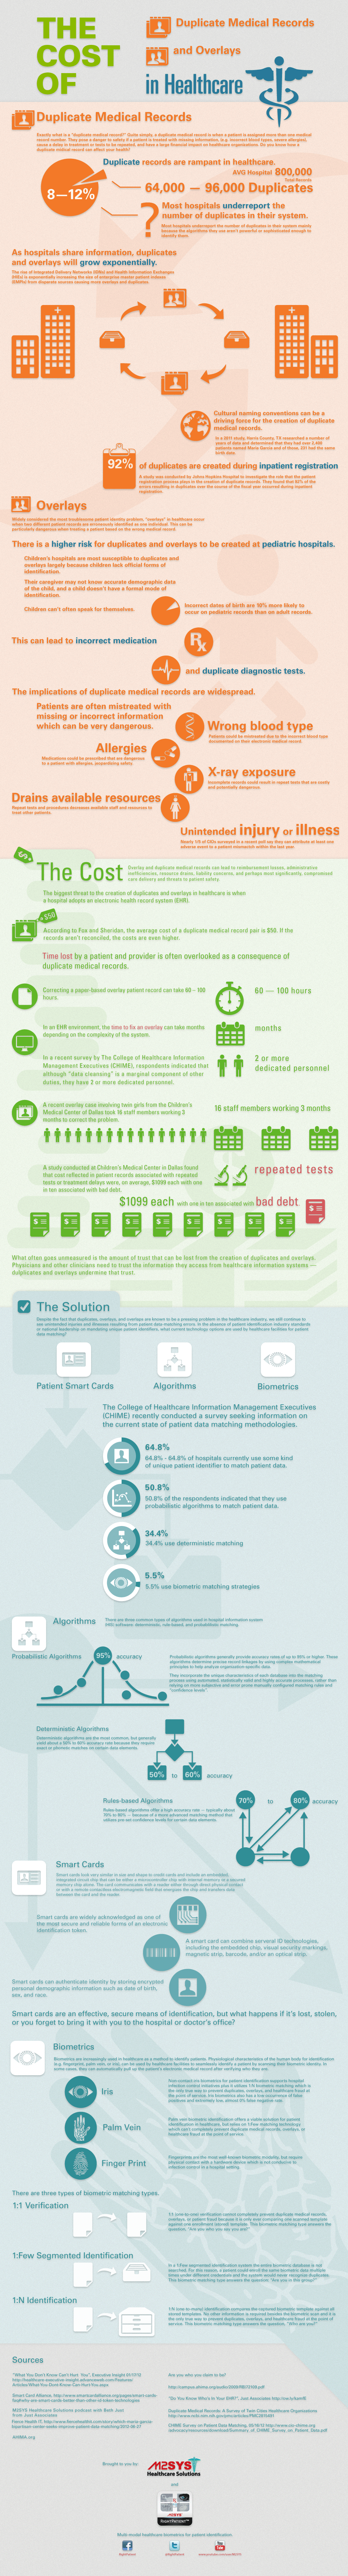 Cost-of-Duplicate-Medical-Records-infographic-plaza